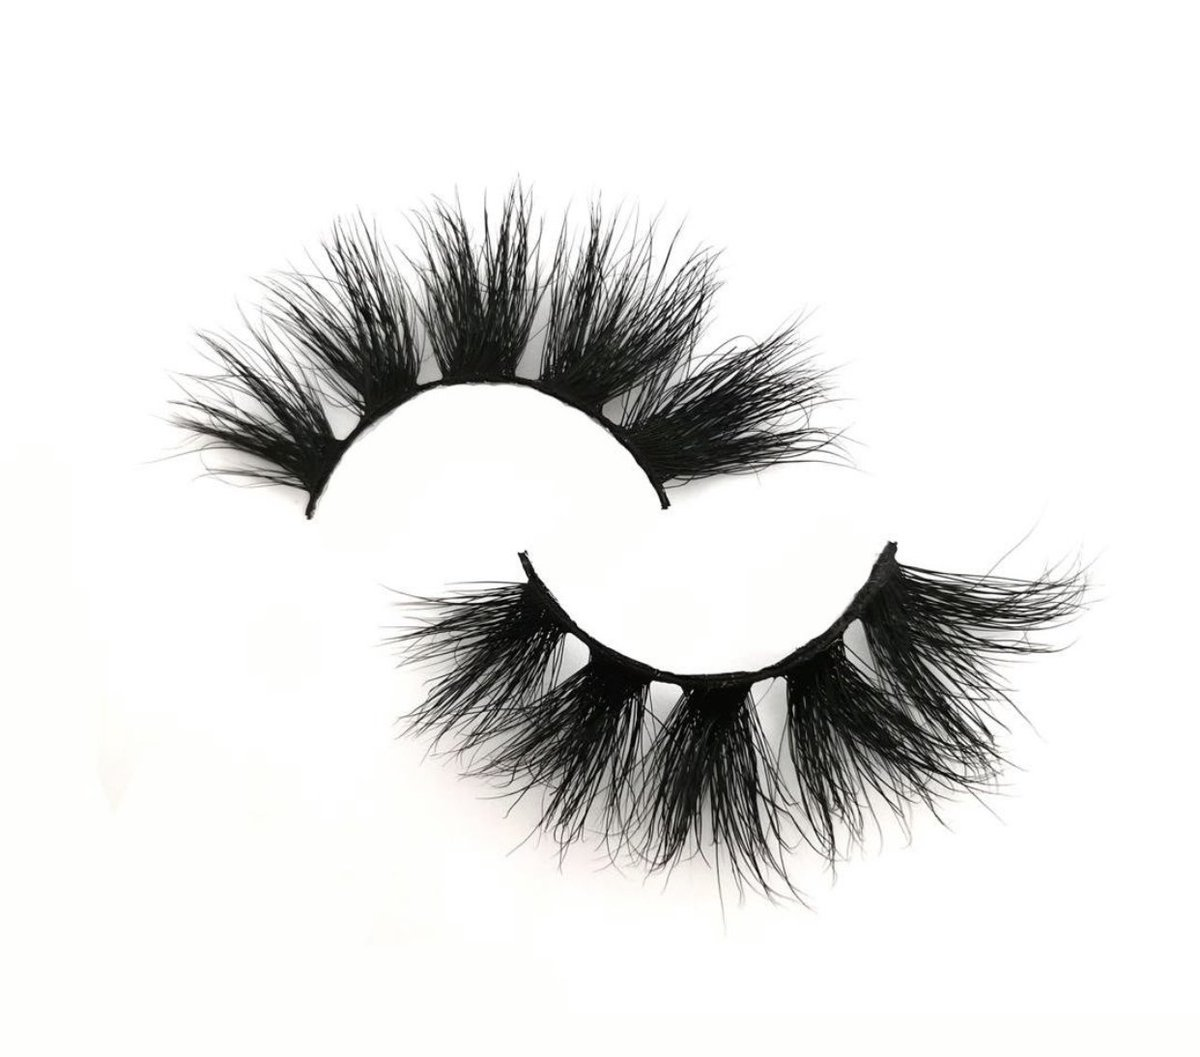 SHOP @SittingPrettty_ for affordable lashes 😍!  Our lashes can be reused up to 25+. They're lightweight & easy to apply. #support #sittingpretty #shop #black #beautiful #Supportblackownedbusinesses #BlackOwned #Entrepreneurship